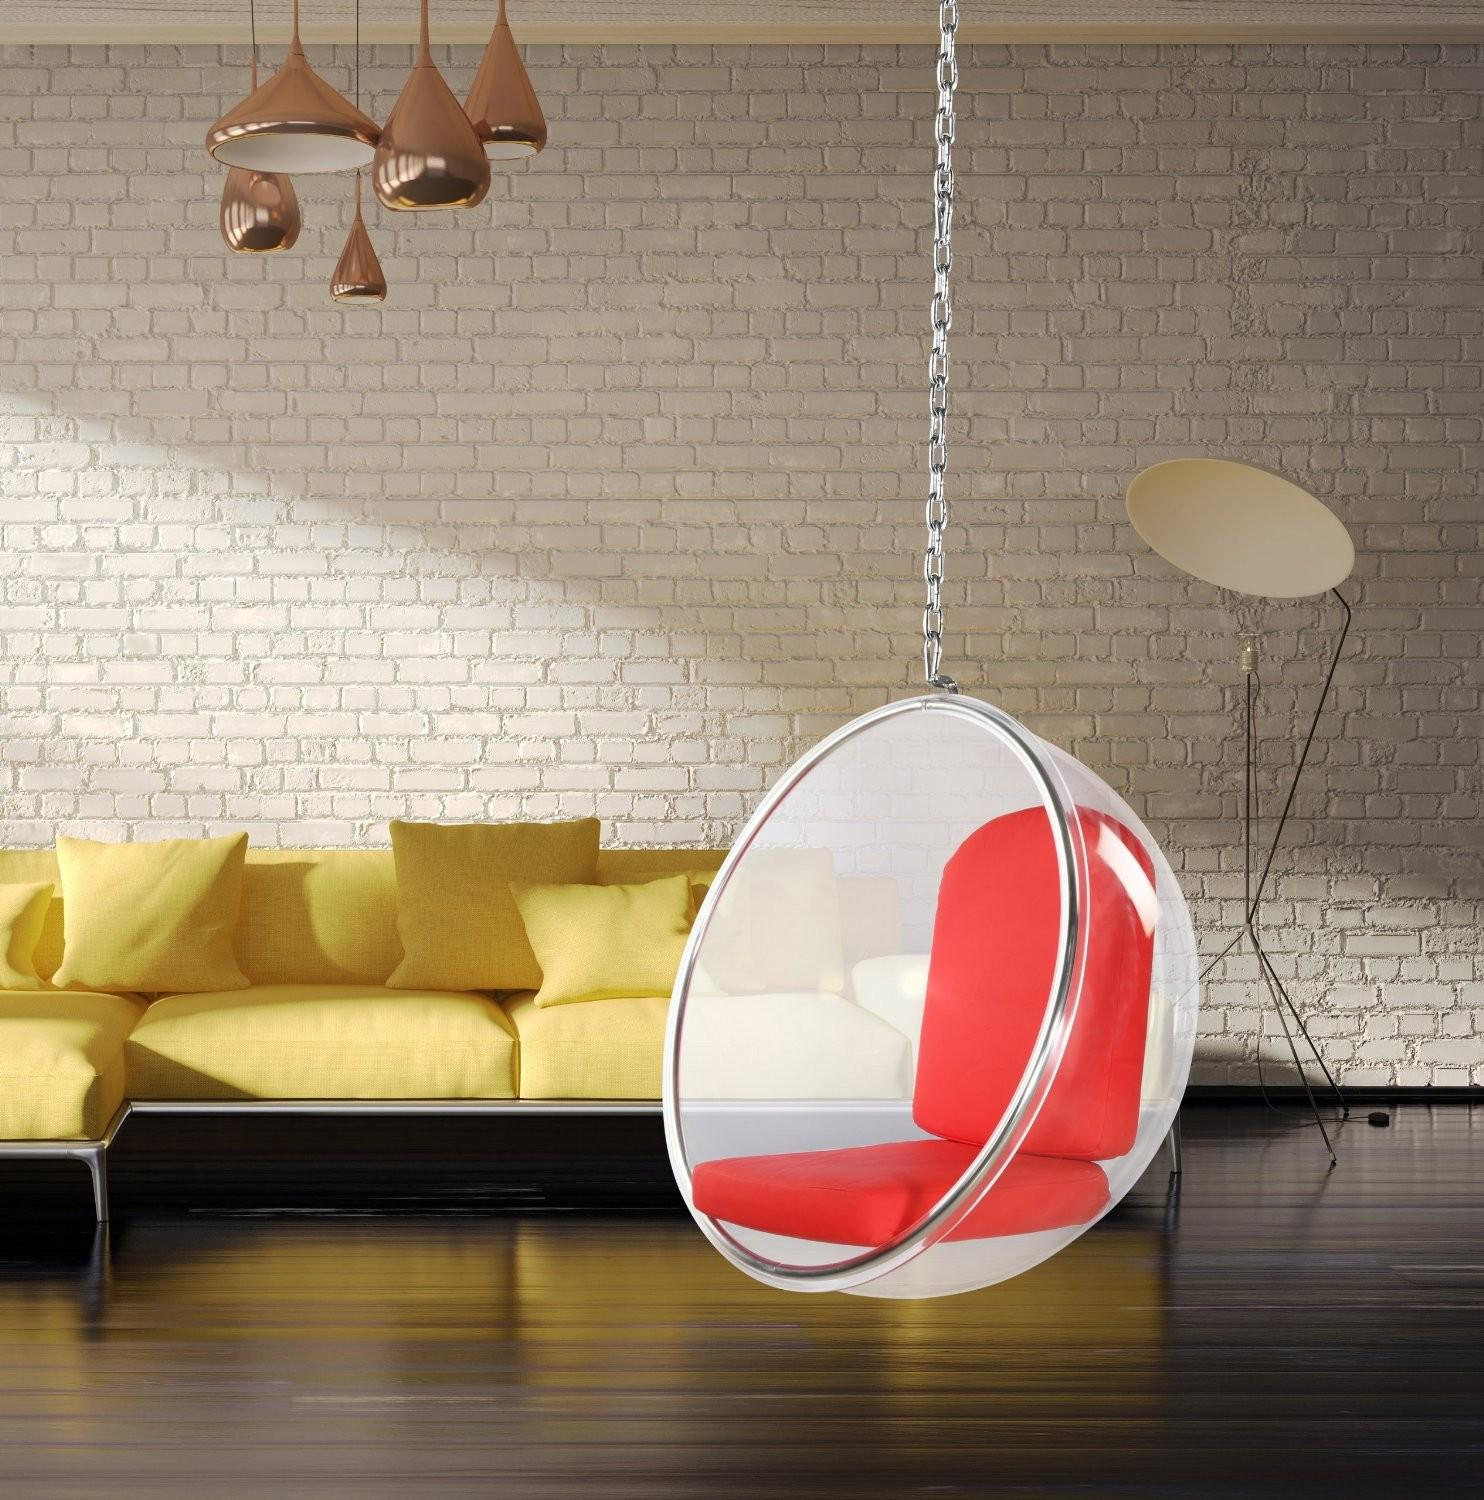 Hanging Bubble Chair Minimalistic Style Your Home